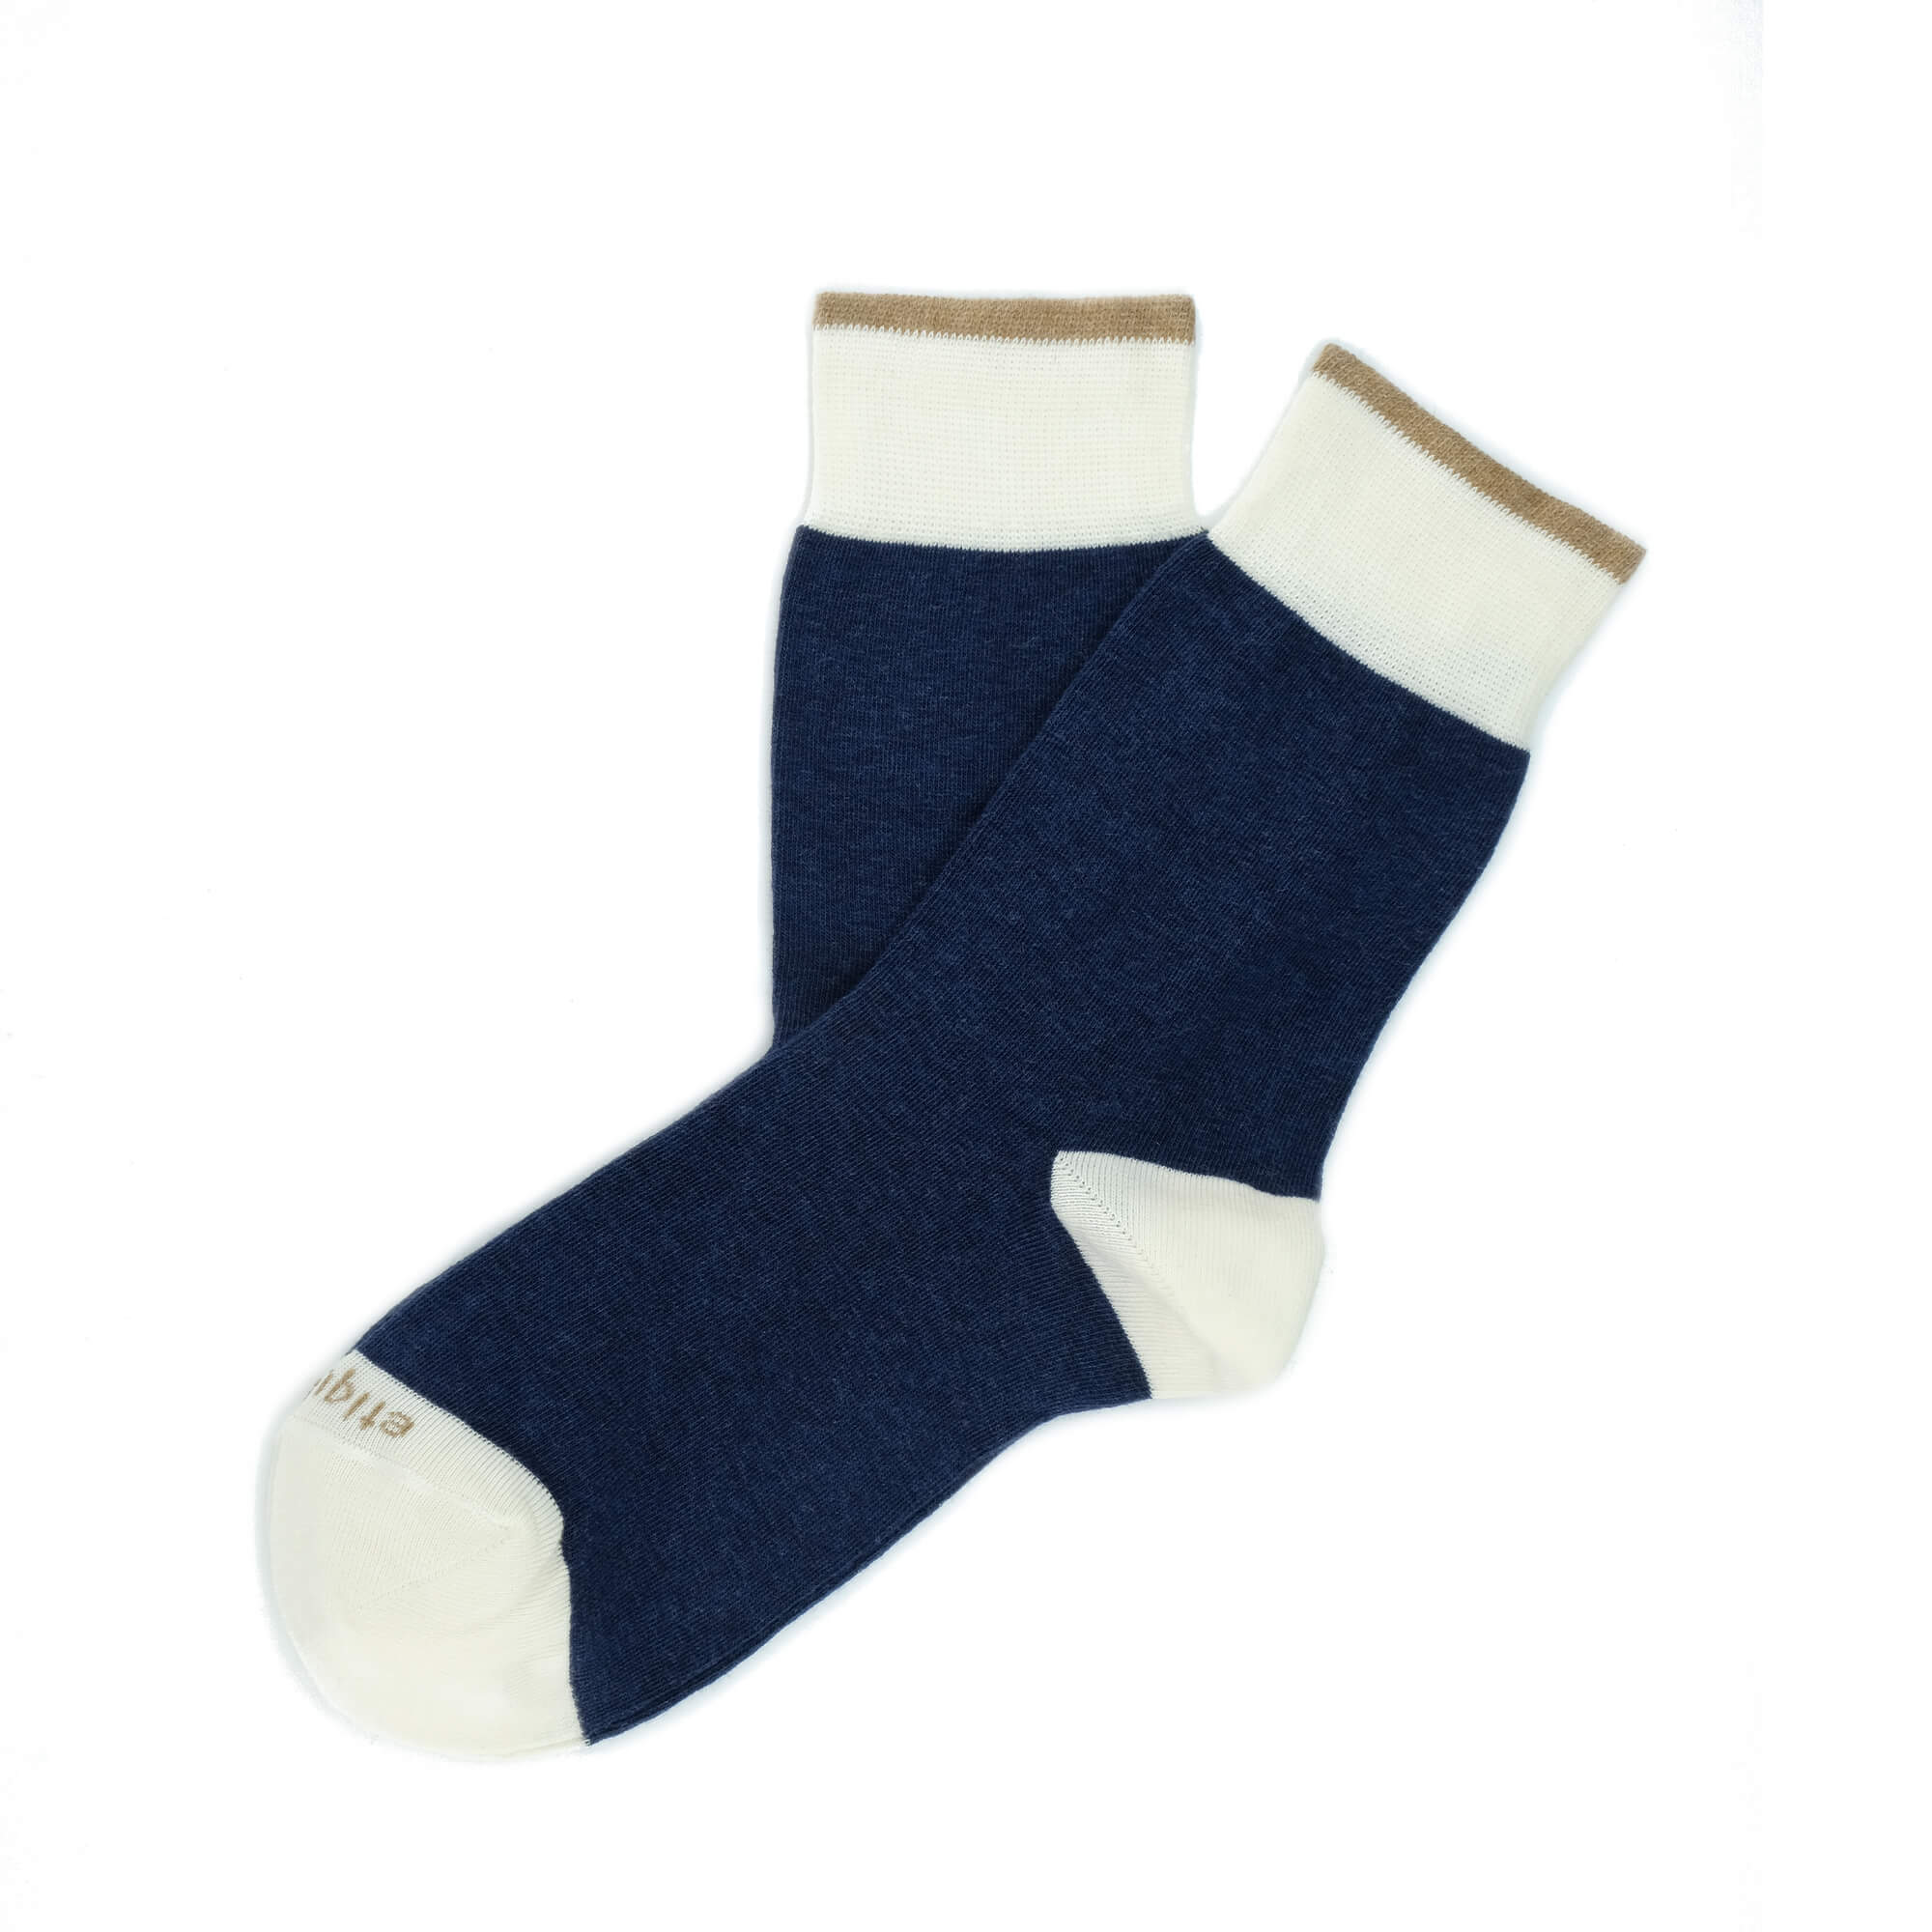 Womens Socks - Tri Pop Women's Socks - Navy⎪Etiquette Clothiers